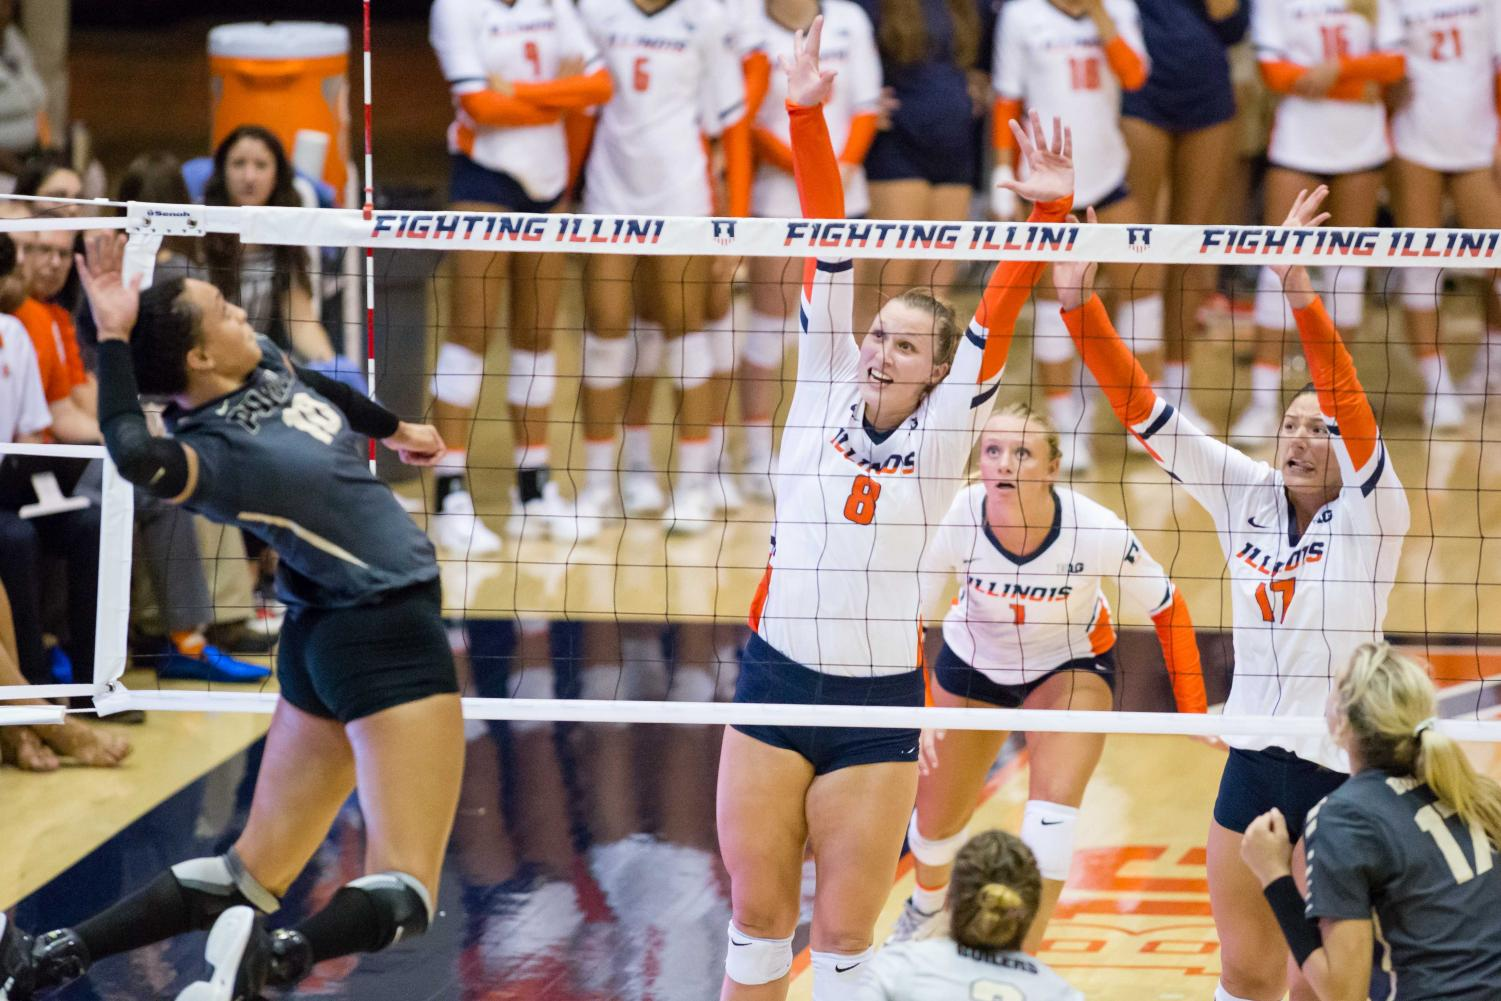 Illinois outside hitter Beth Prince (8) and Illinois middle blocker Blayke Hranicka (17) rise up the block the ball during the match against Purdue at Huff Hall on Friday, October 6. The Illini lost 3-0.